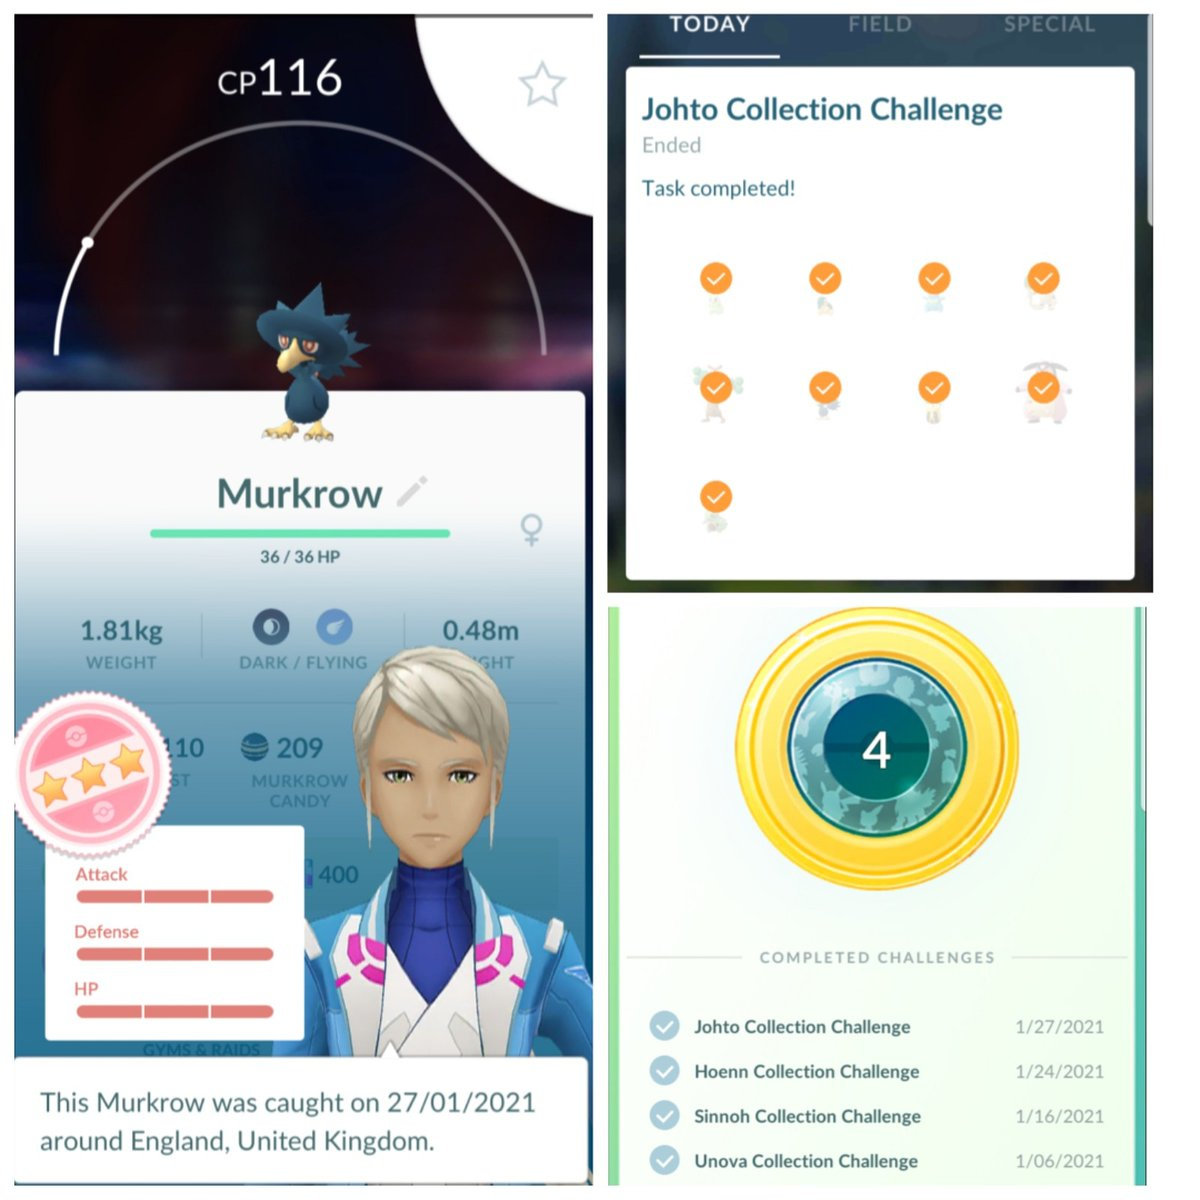 Johto collection task done,that makes 4 collection tasks complete😁👍,next stop Kanto celebration event,#teammystic #wednesdaymorning #murkrow #pokemongo #pokemon #hundo #incense #pokemonlife #game #fun  #communityday #pokestops #niantic #pokeball #pokedex #niantic